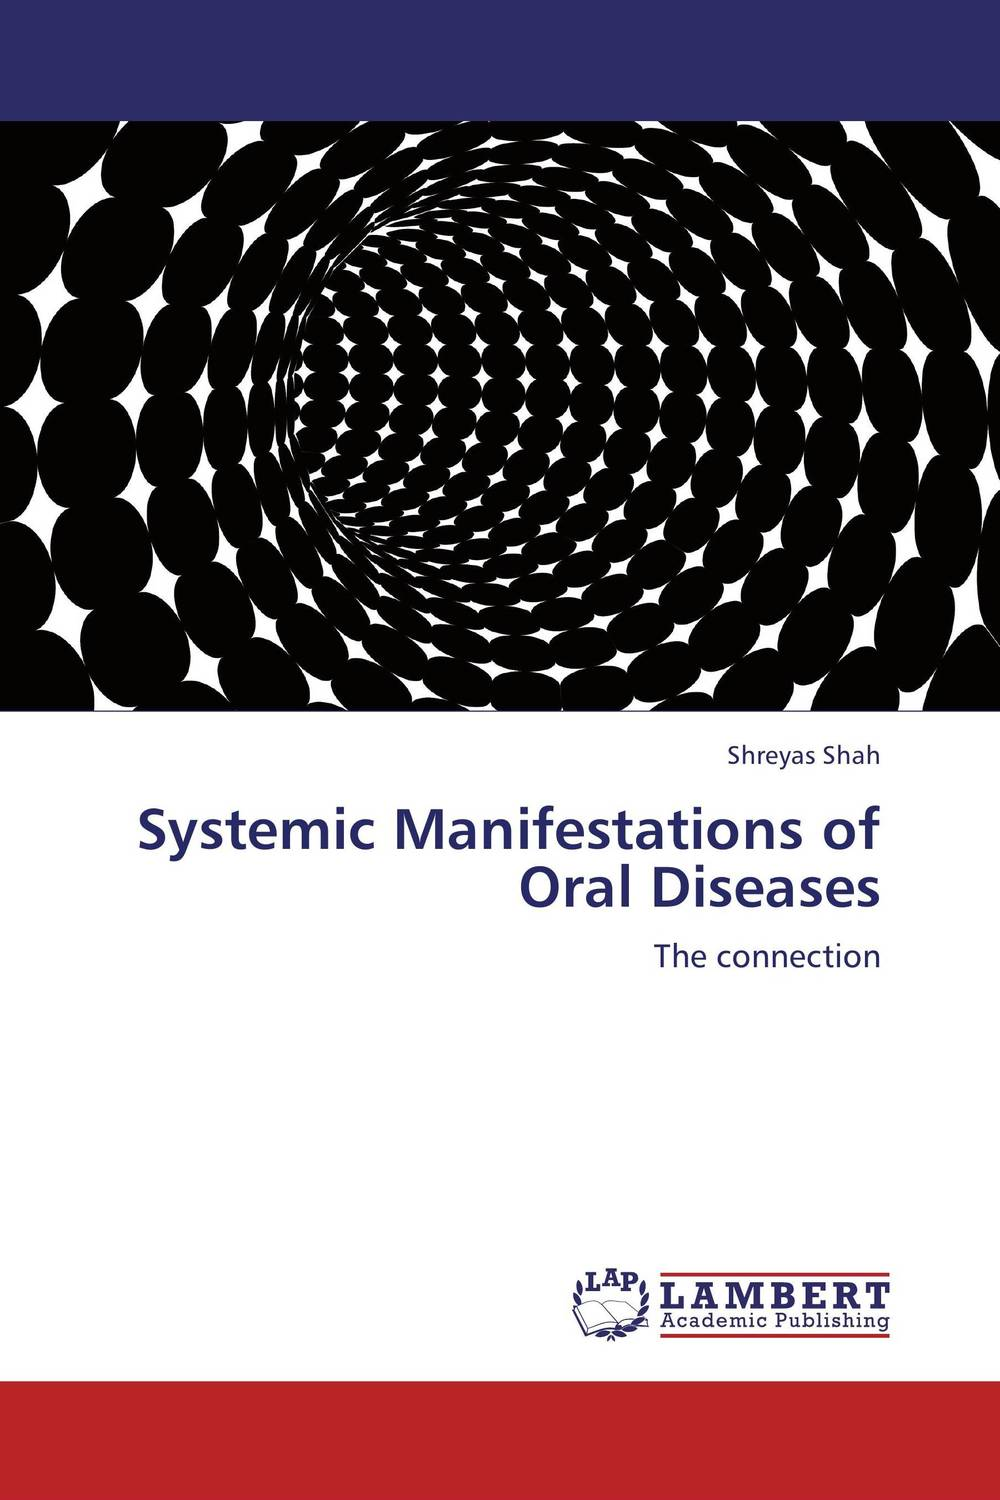 Systemic Manifestations of Oral Diseases peter lockhart b oral medicine and medically complex patients